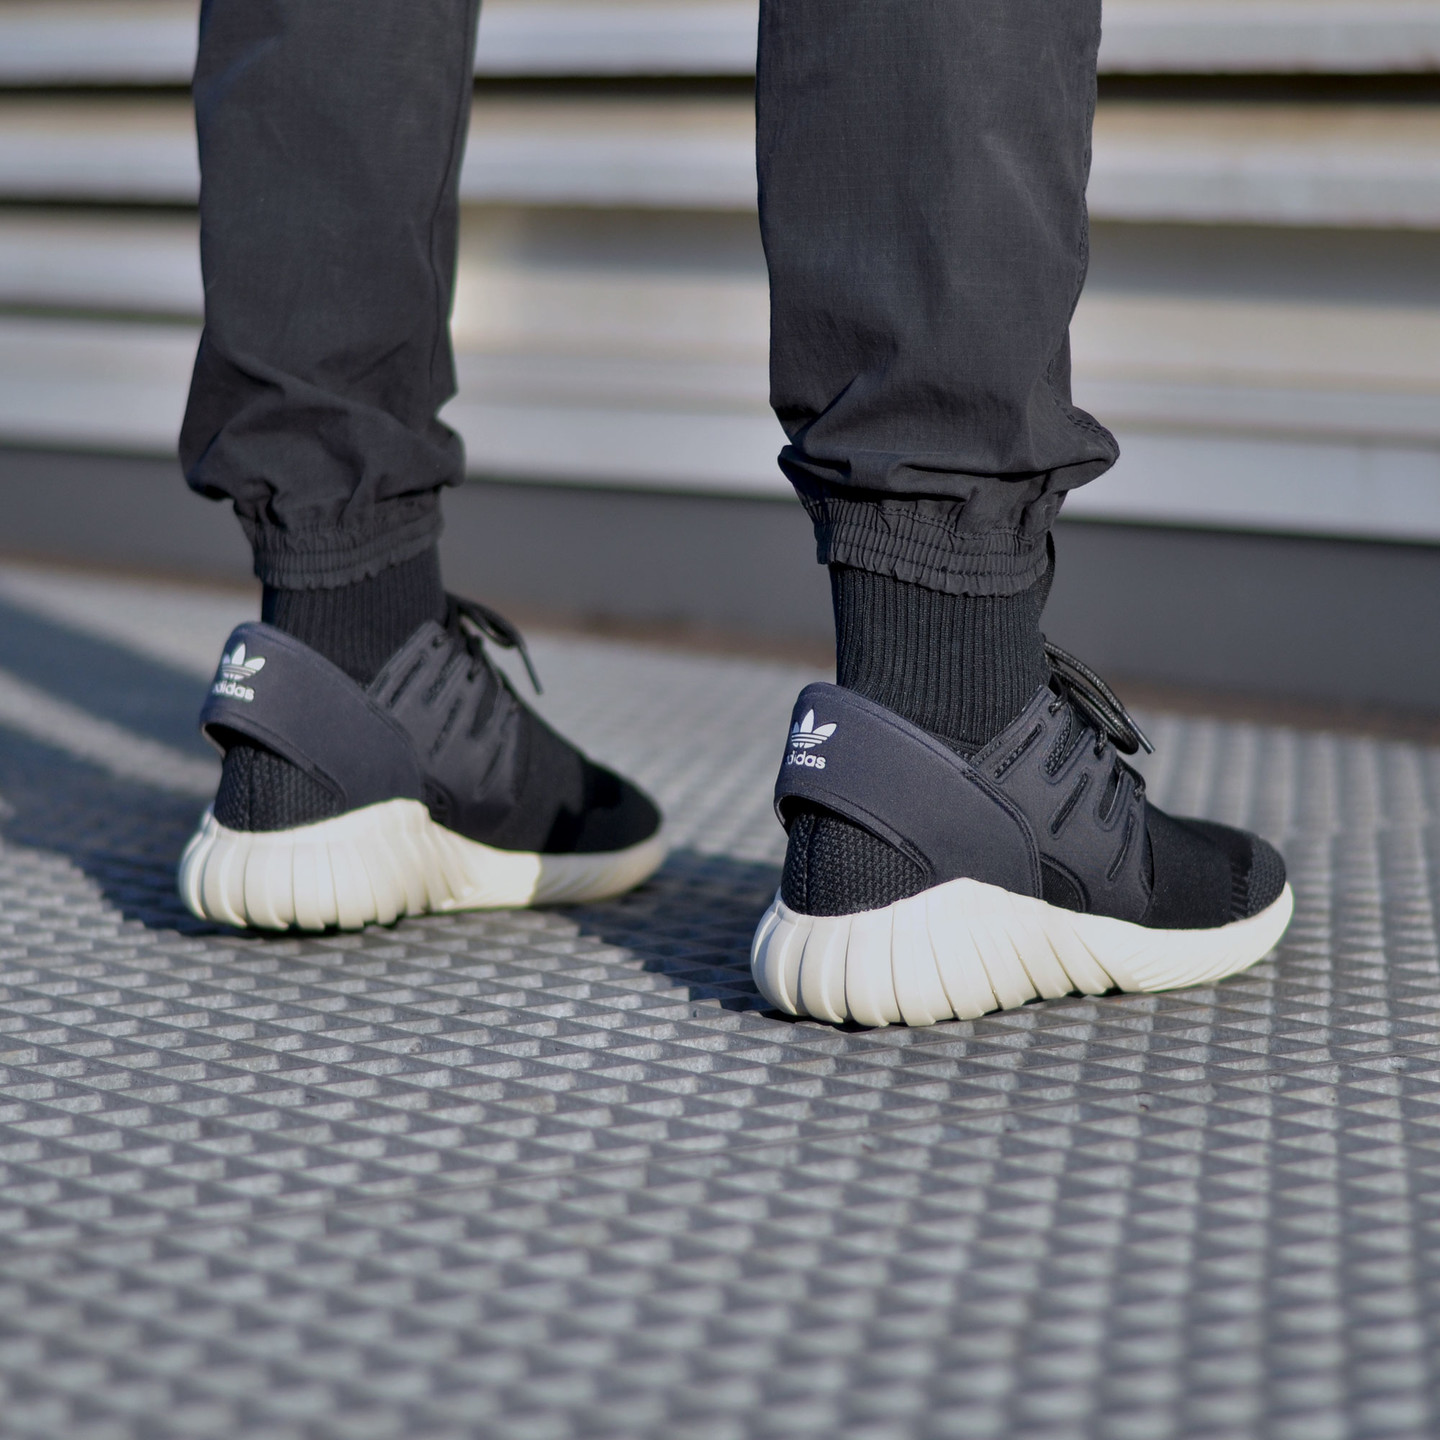 Adidas Tubular Doom Primeknit Black / Cream White S74921-45.33